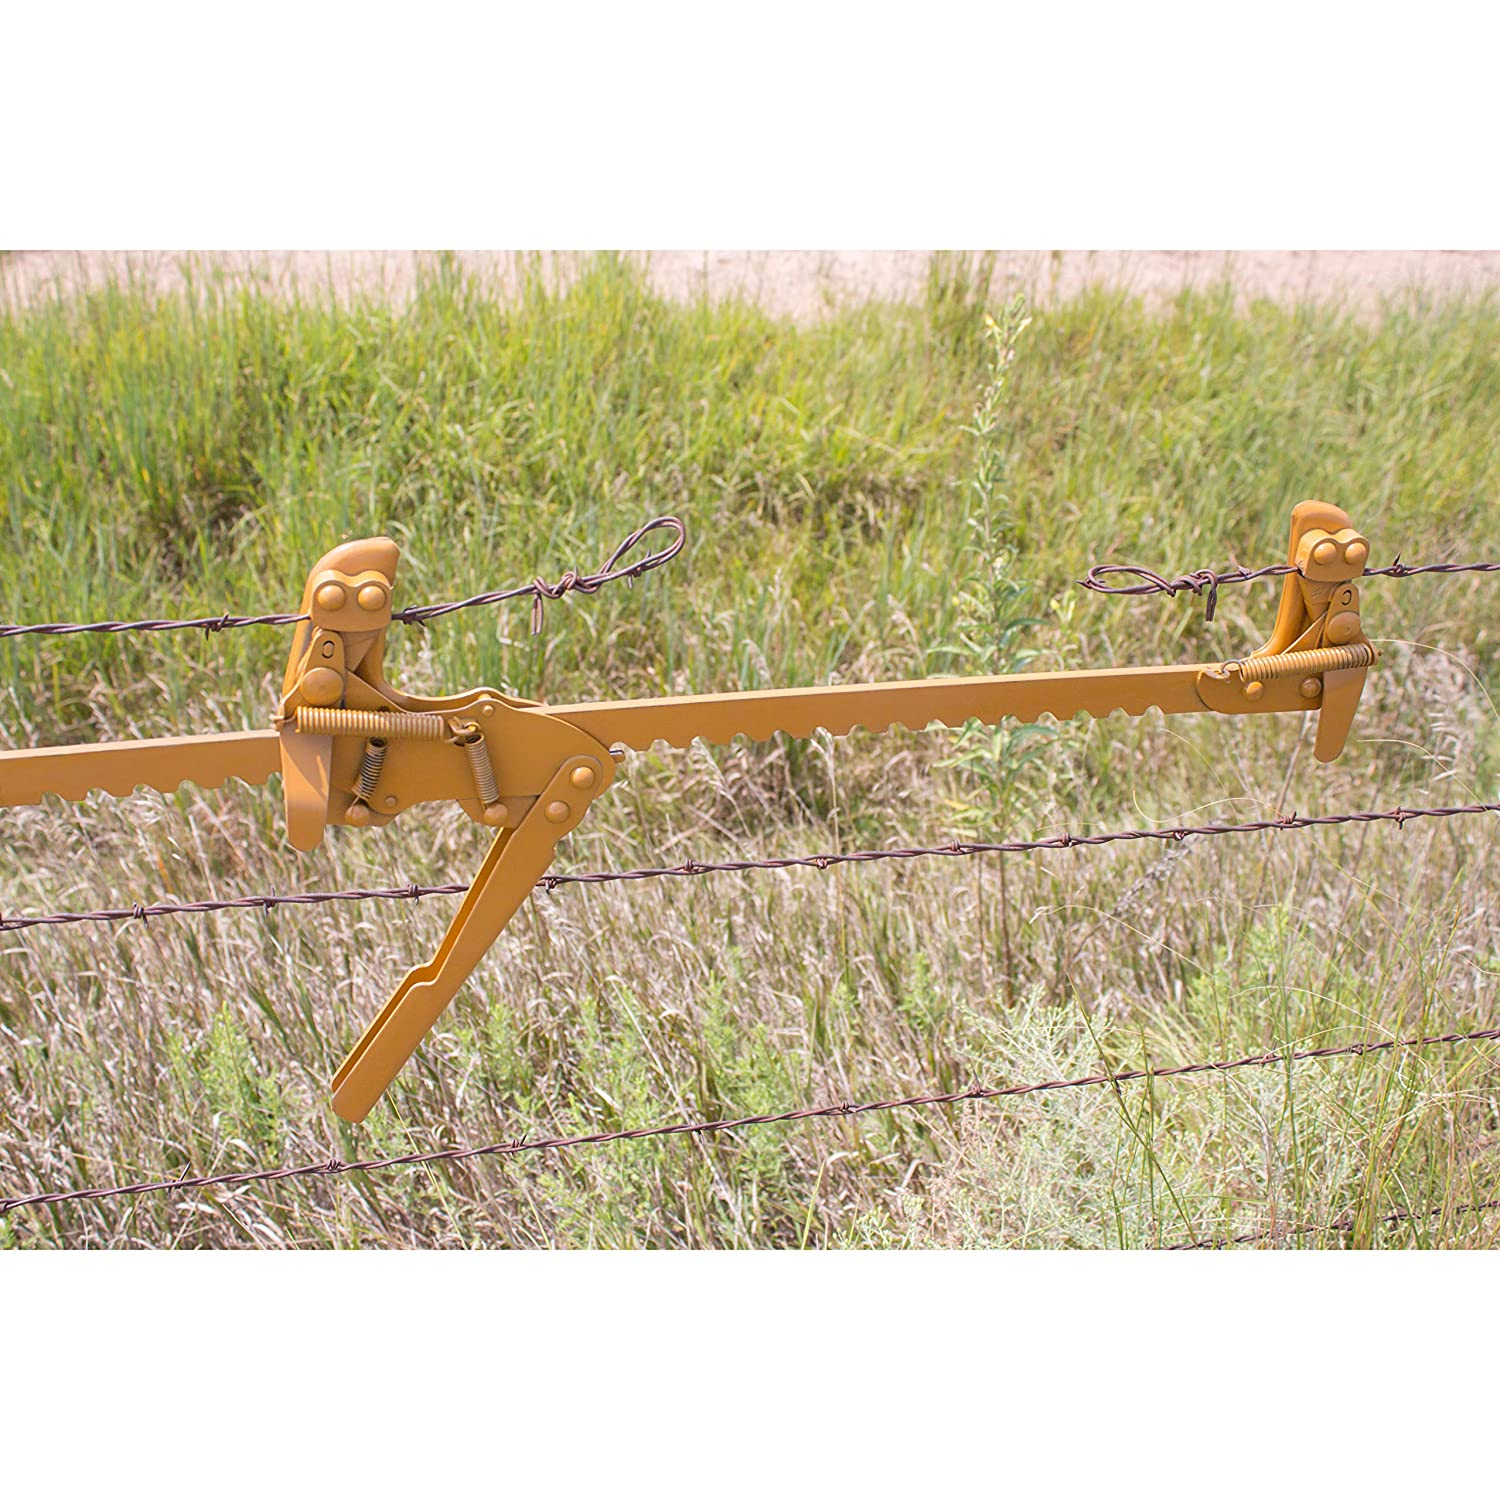 Dutton-Lainson 405 Heavy-Duty Fence Stretcher/Splicer: Amazon.ca ...